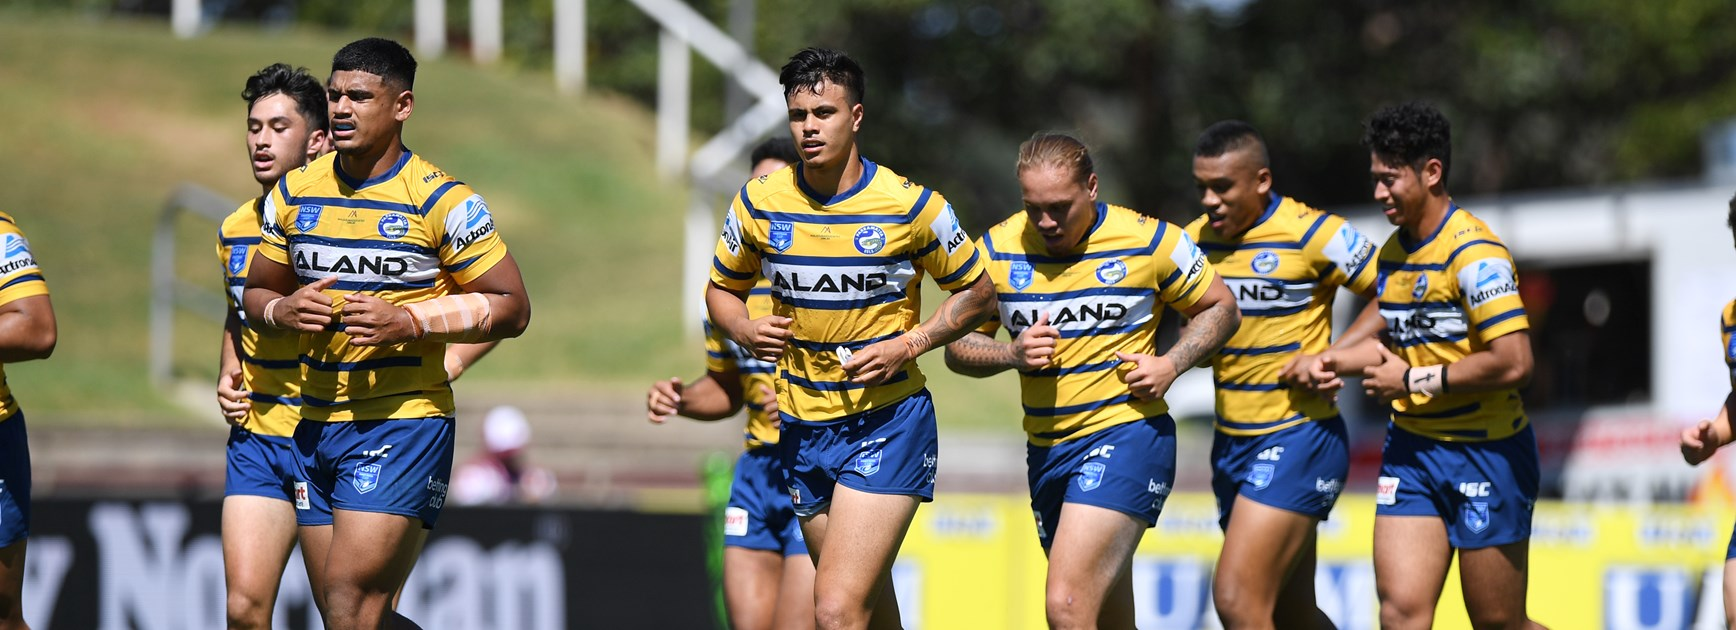 Eels Jersey Flegg run down by Mounties